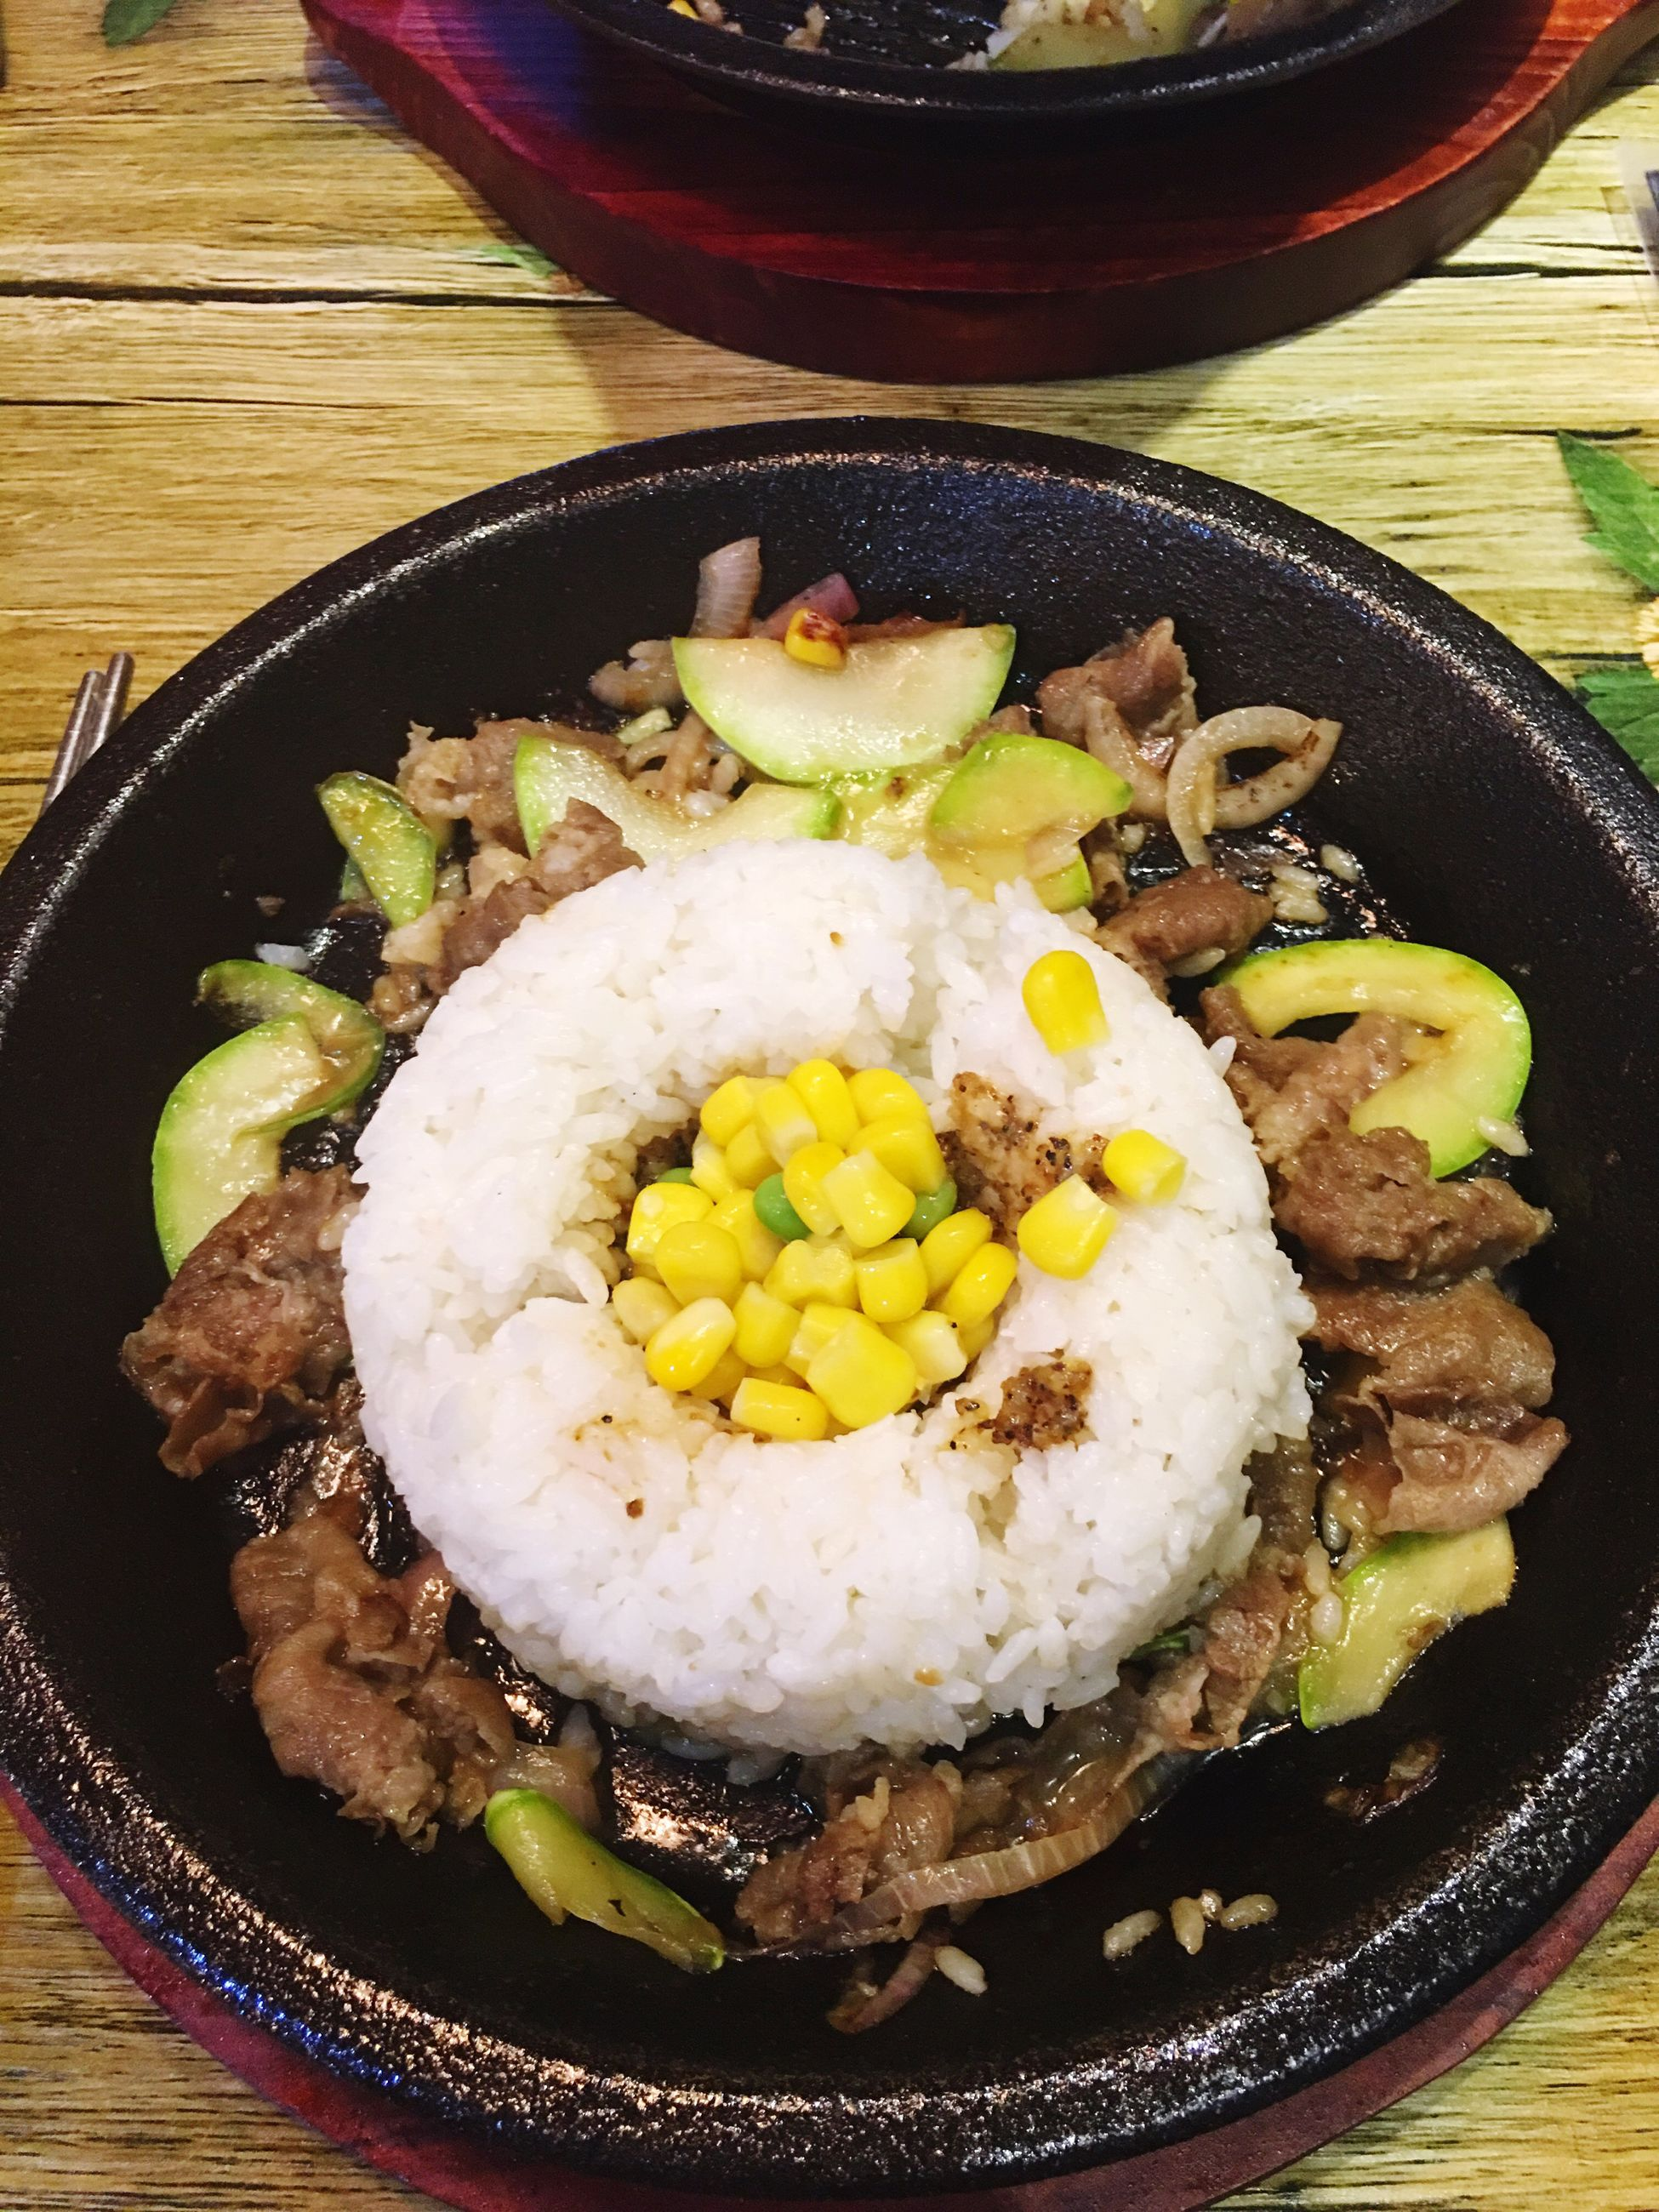 food, food and drink, indoors, freshness, healthy eating, healthy lifestyle, meal, ready-to-eat, indulgence, appetizer, gourmet, serving size, temptation, slice, plate, egg yolk, close-up, cooked, food styling, homemade, food state, serving dish, chinese food, garnish, dinner